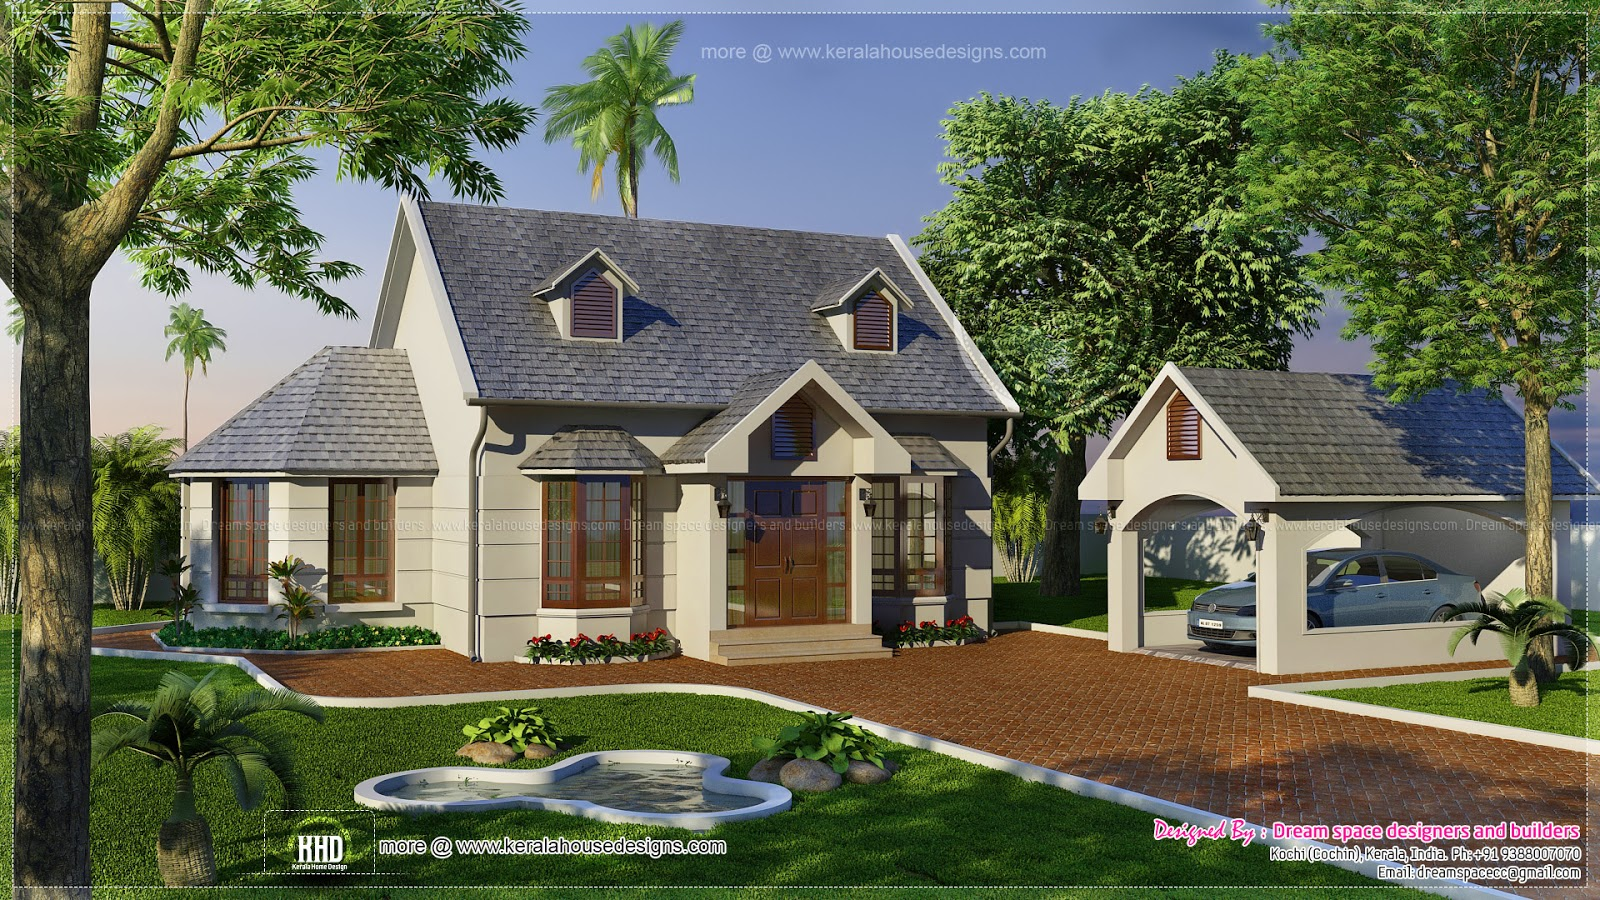 Vacation garden home design in 1200 kerala home for Free vacation home plans